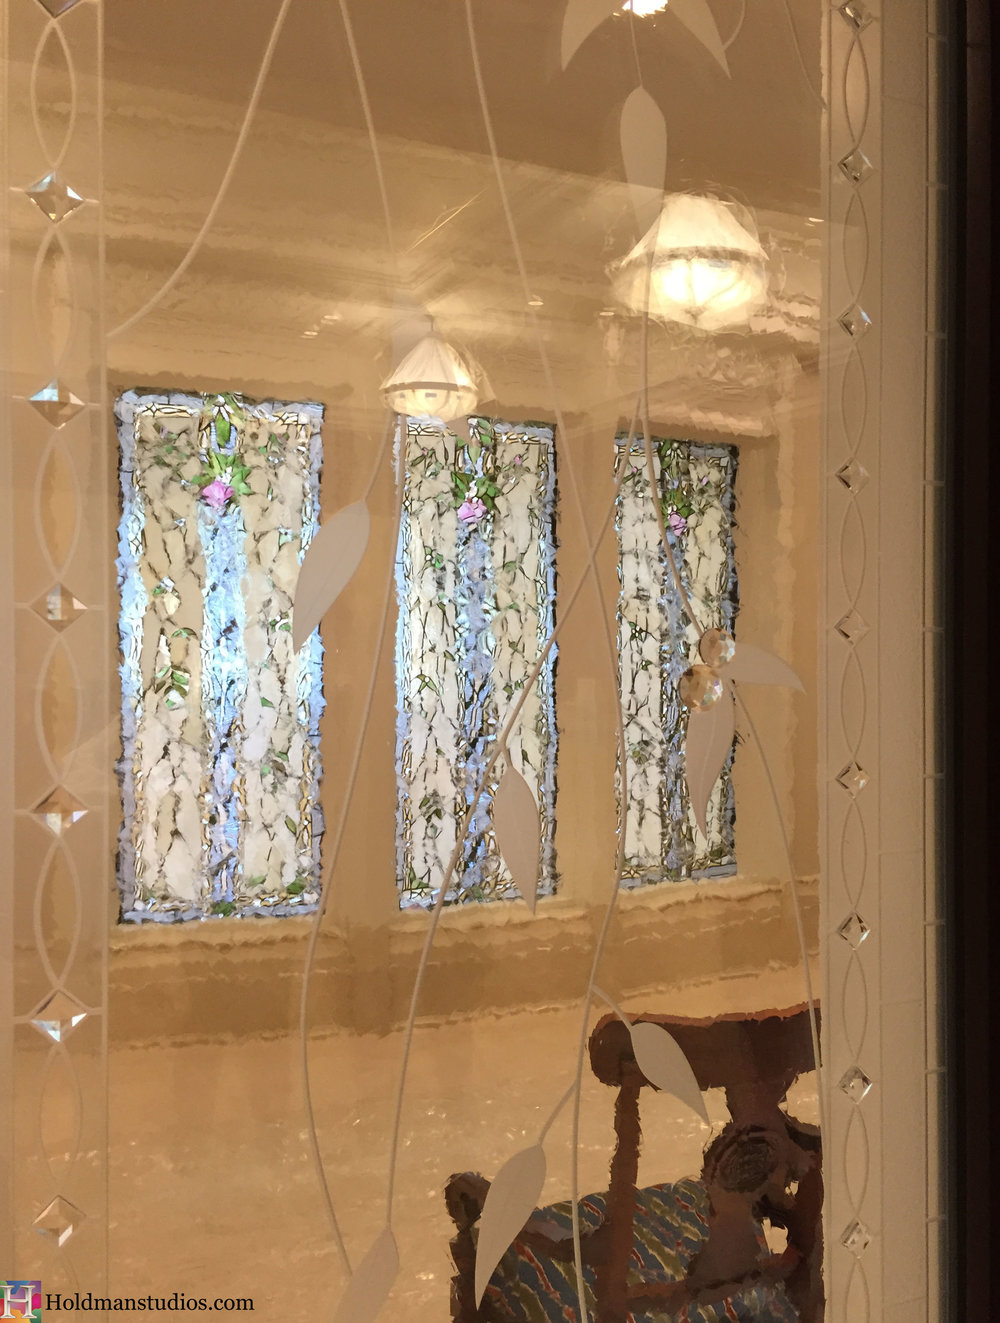 Holdman_Studios_Stained_Etched_Art_Glass_Payson_Utah_Temple_Apple_Blossom_Leaves_DNA_Spiral_Windows.jpg